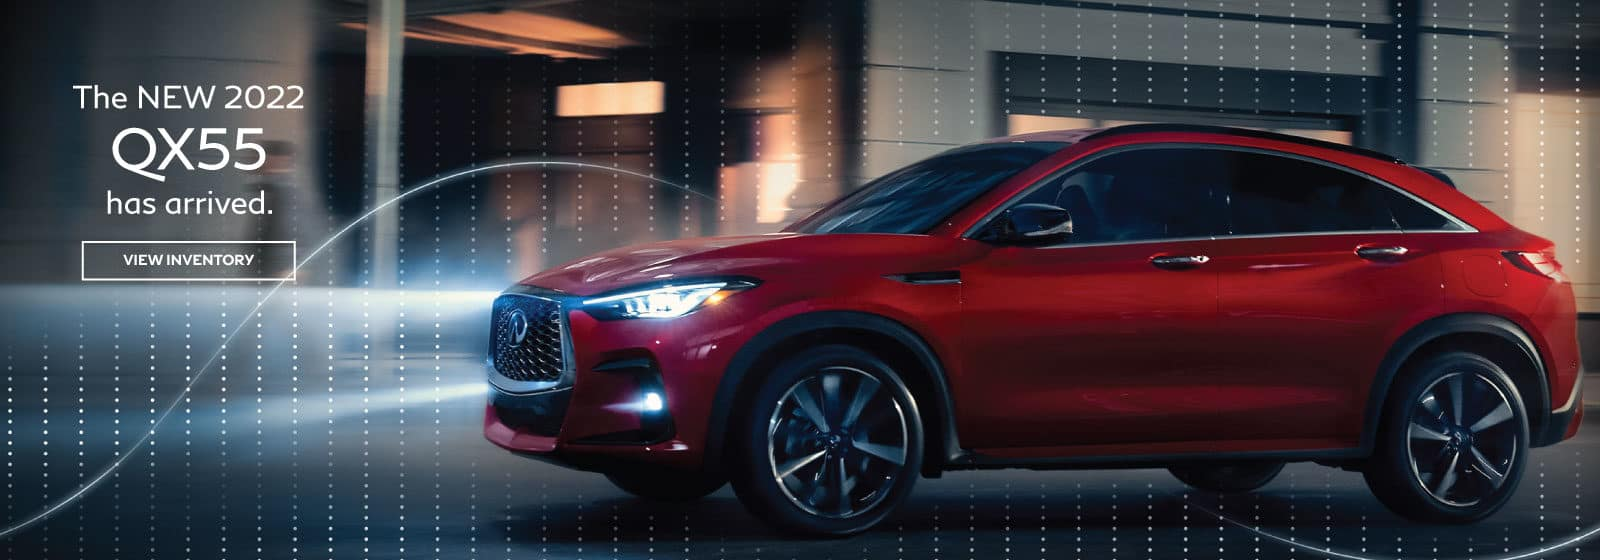 The all new QX55 has arrived!